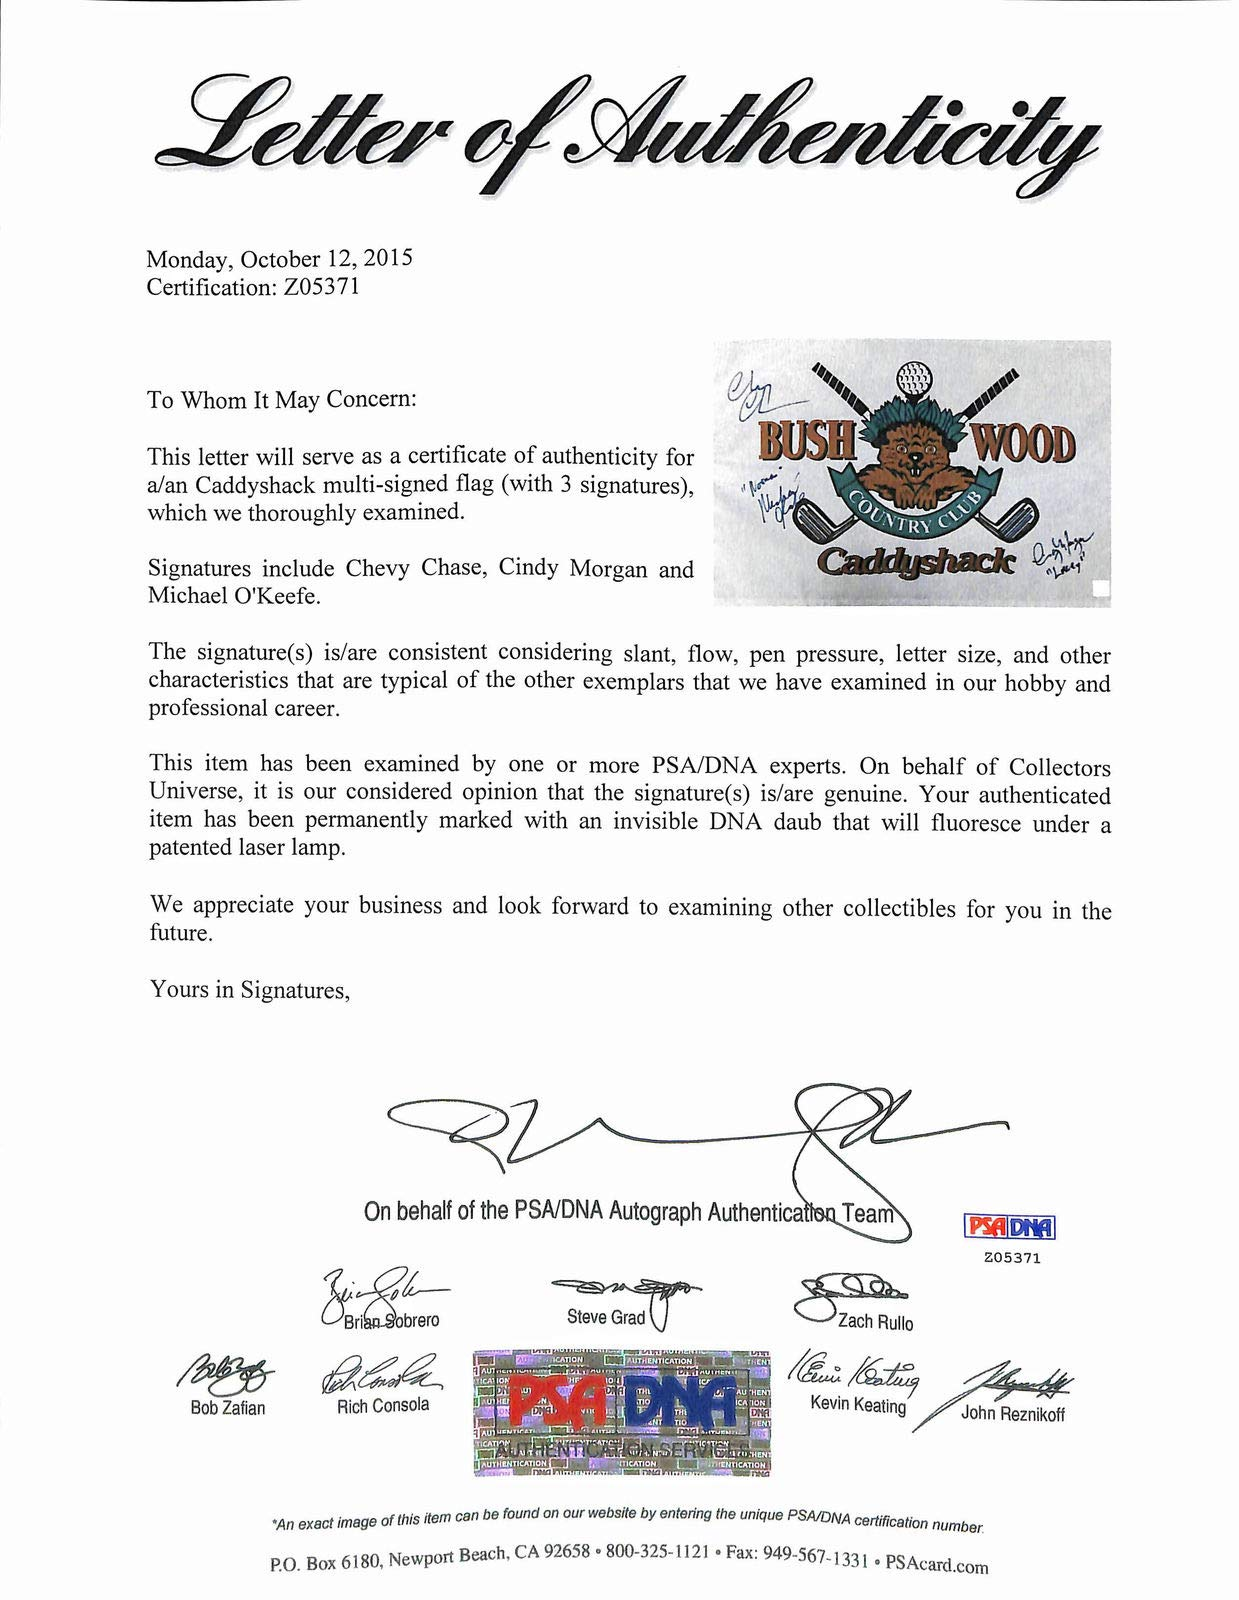 Caddyshack 3 Chase Morgan & O'Keefe Autographed Signed Memorabilia Bushwood Club Flag PSA/DNA #Z05371